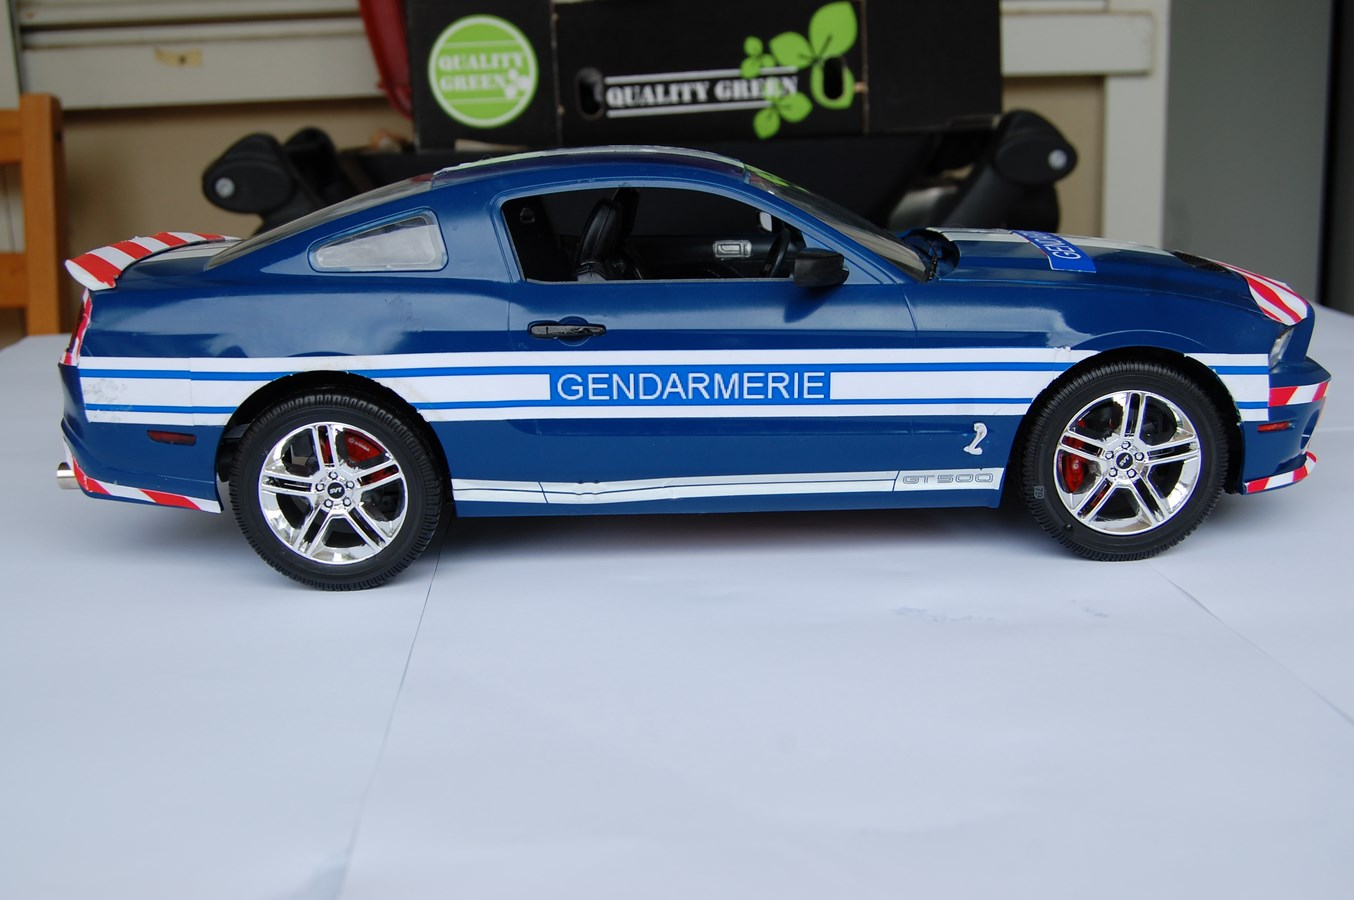 Shelby GT 500 version imaginaire Gendarmerie - Page 2 221373Mustang44Copier